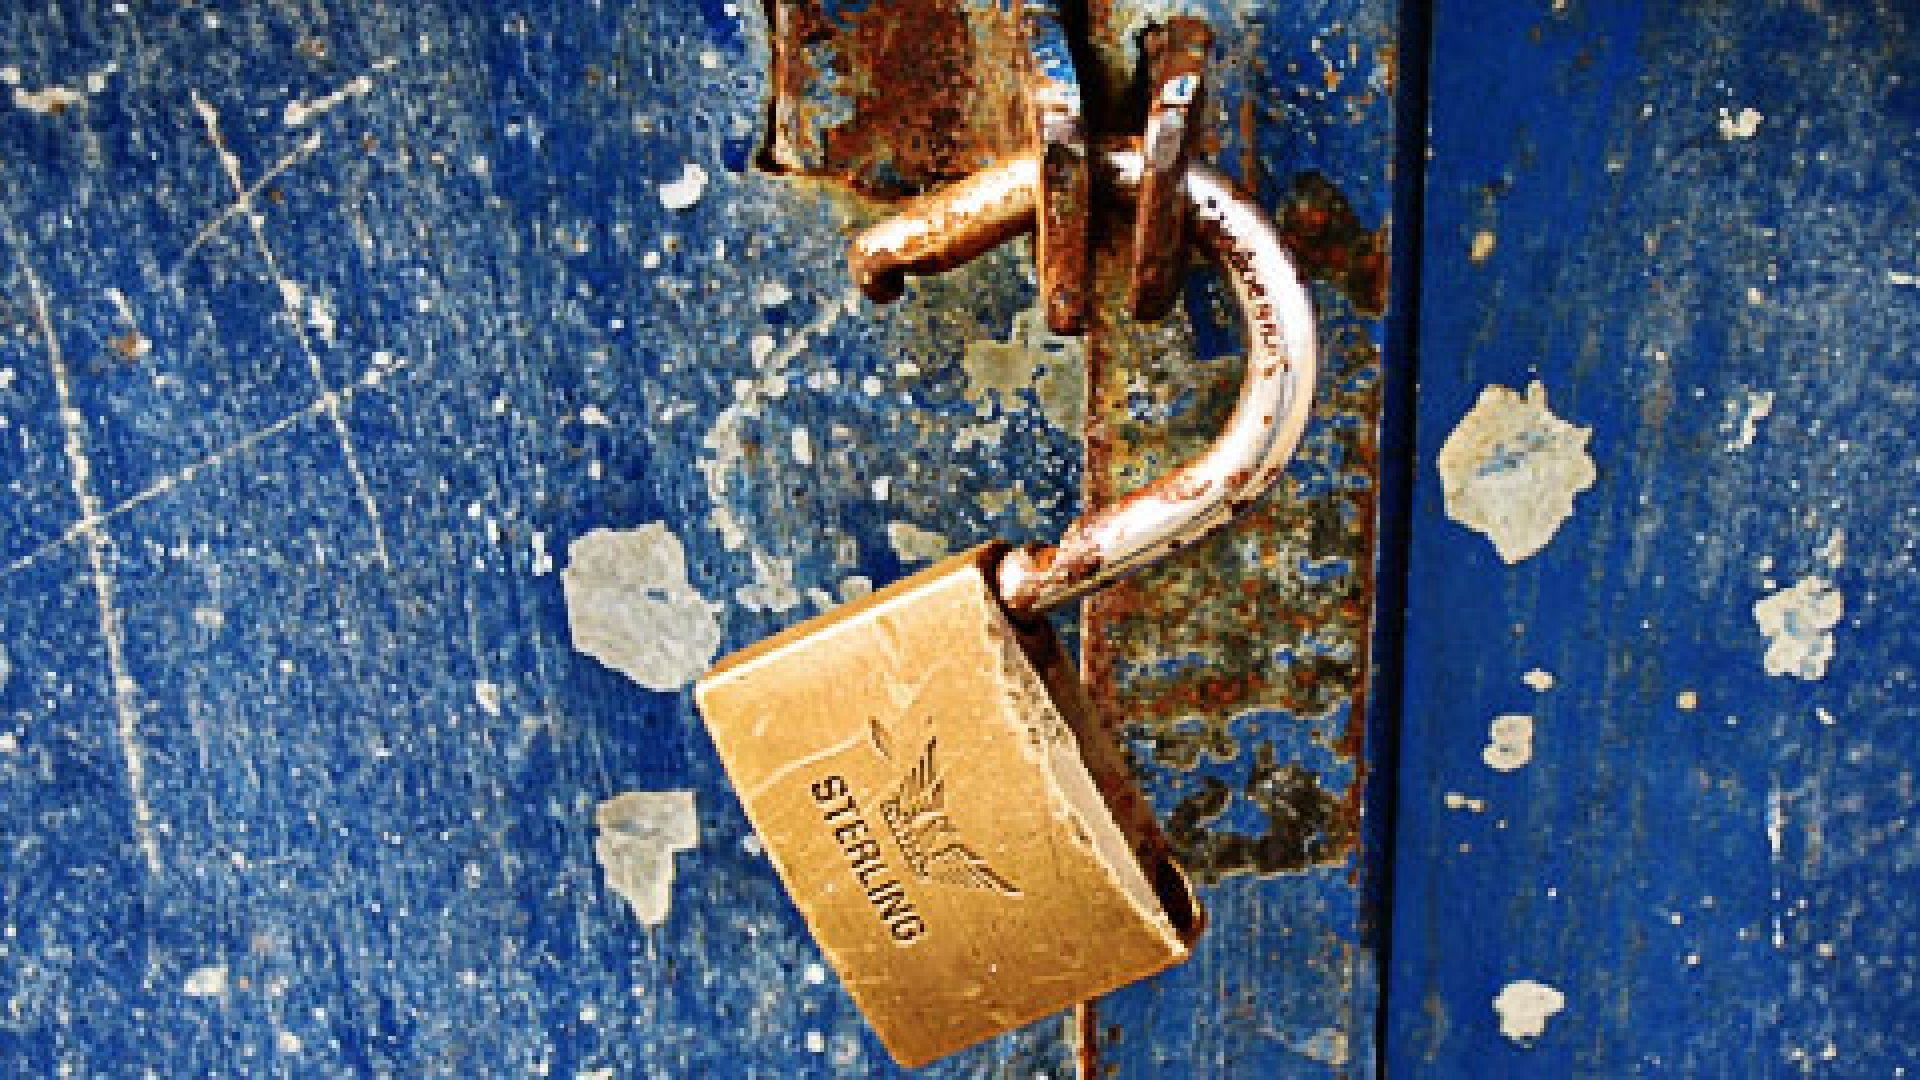 How to Avoid Password Hacks: 5 Rules